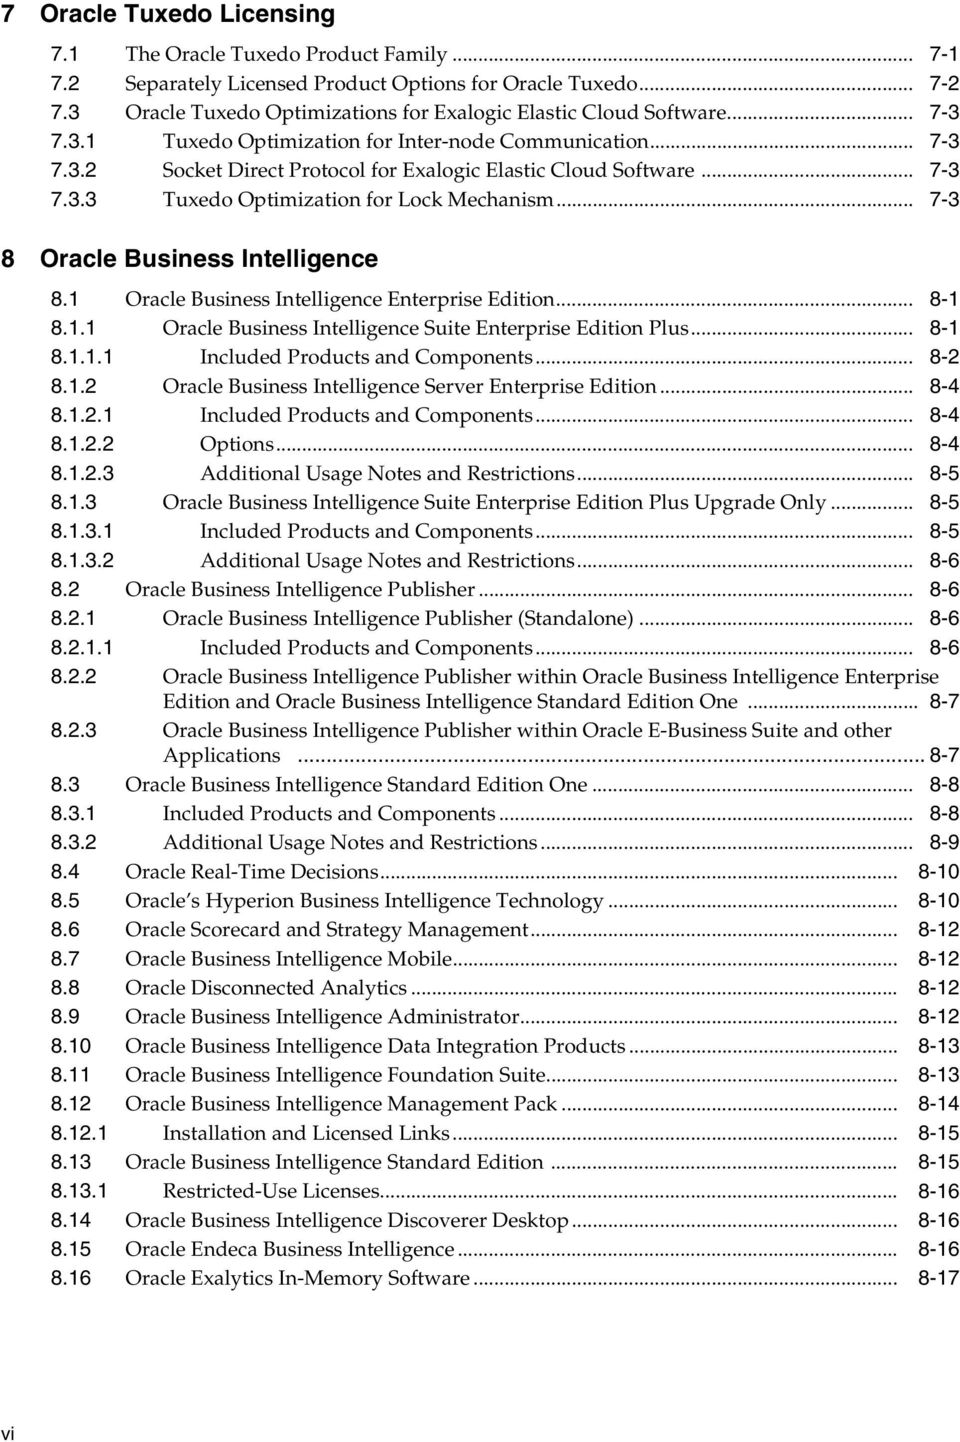 .. 7-3 7.3.3 Tuxedo Optimization for Lock Mechanism... 7-3 8 Oracle Business Intelligence 8.1 Oracle Business Intelligence Enterprise Edition... 8-1 8.1.1 Oracle Business Intelligence Suite Enterprise Edition Plus.